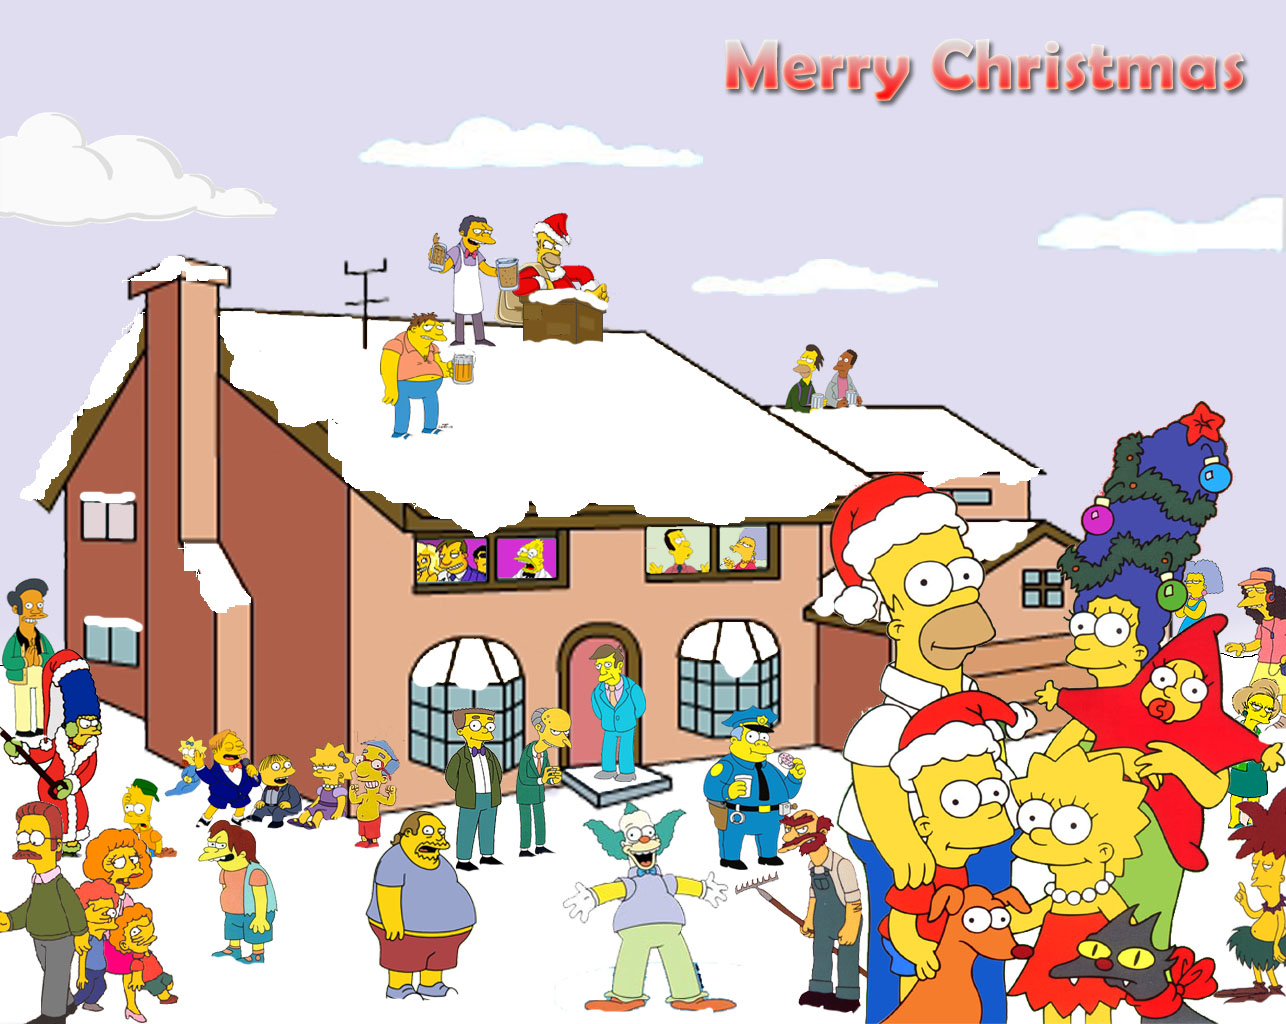 The simpsons wallpapers christmas   Socialphy 1286x1024